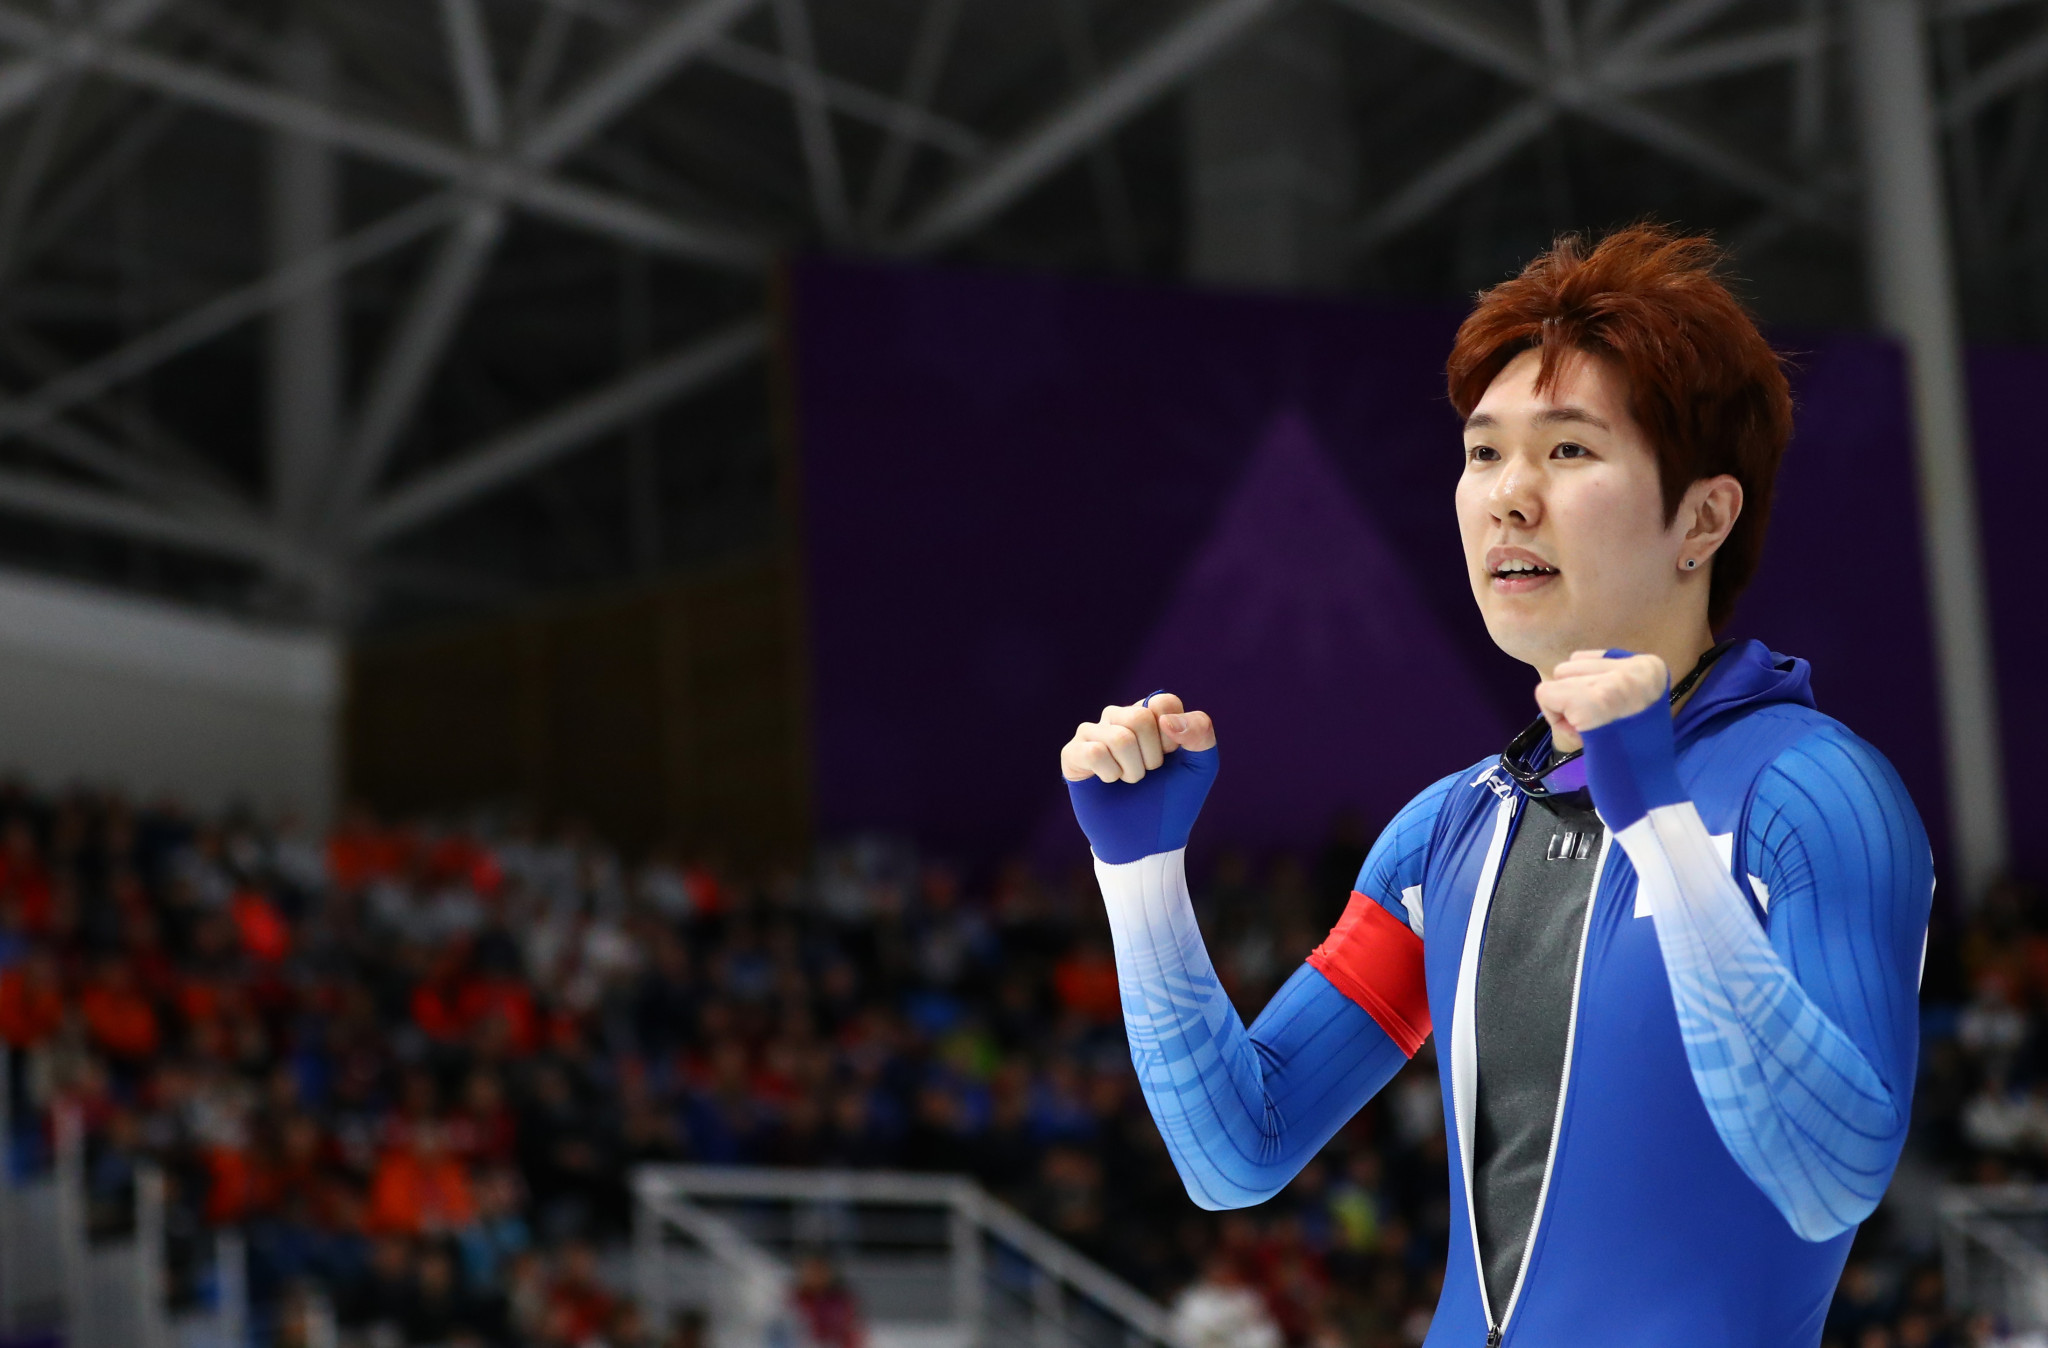 South Korean speed skaters handed increased suspensions for drinking at training facility